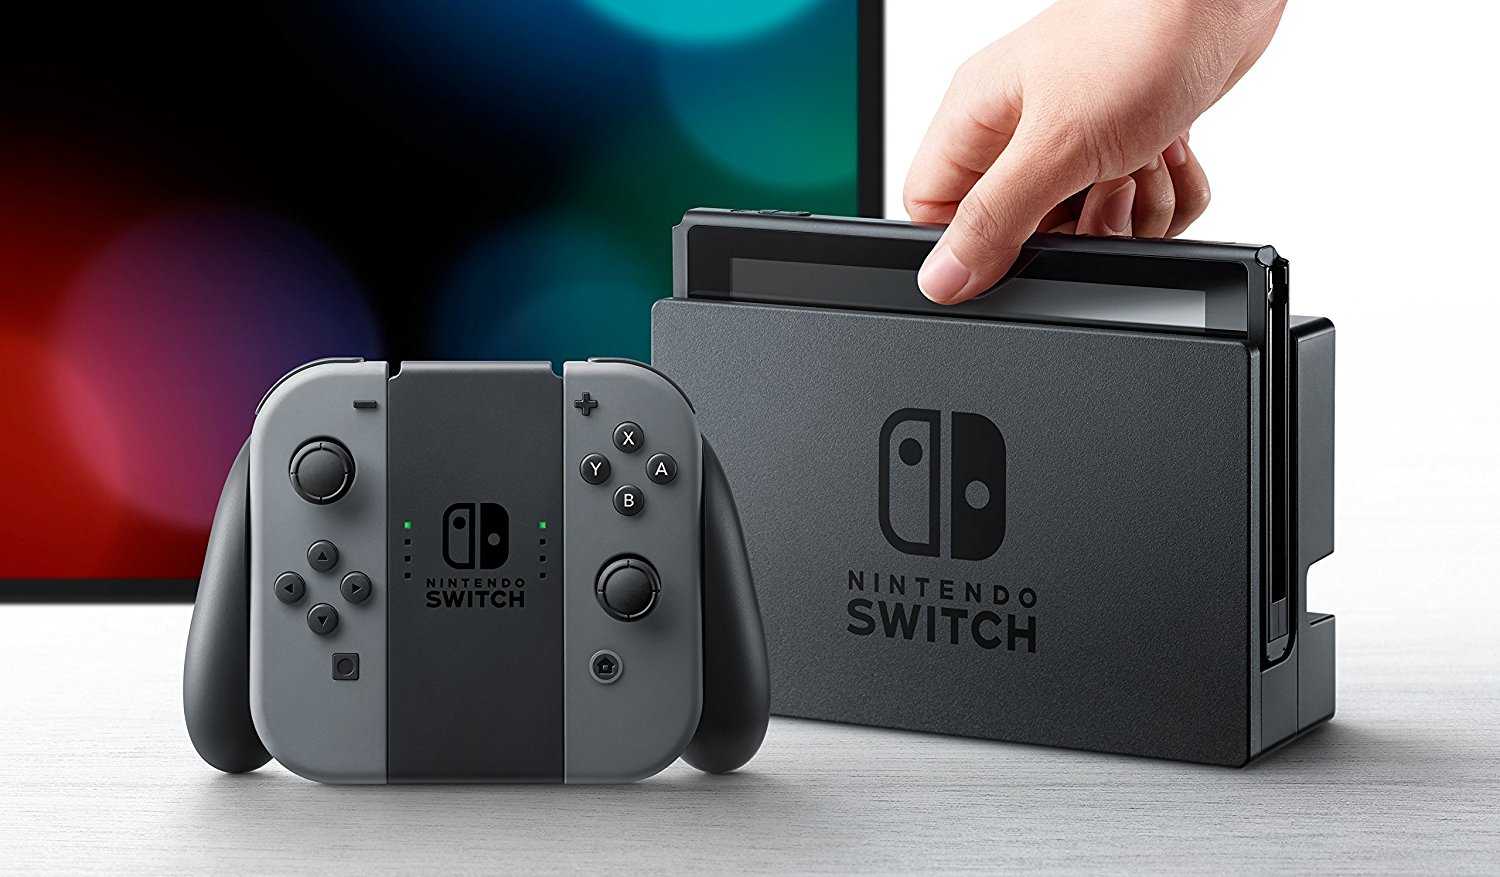 Nintendo Switch Revision Expected in Summer 2019, May Feature